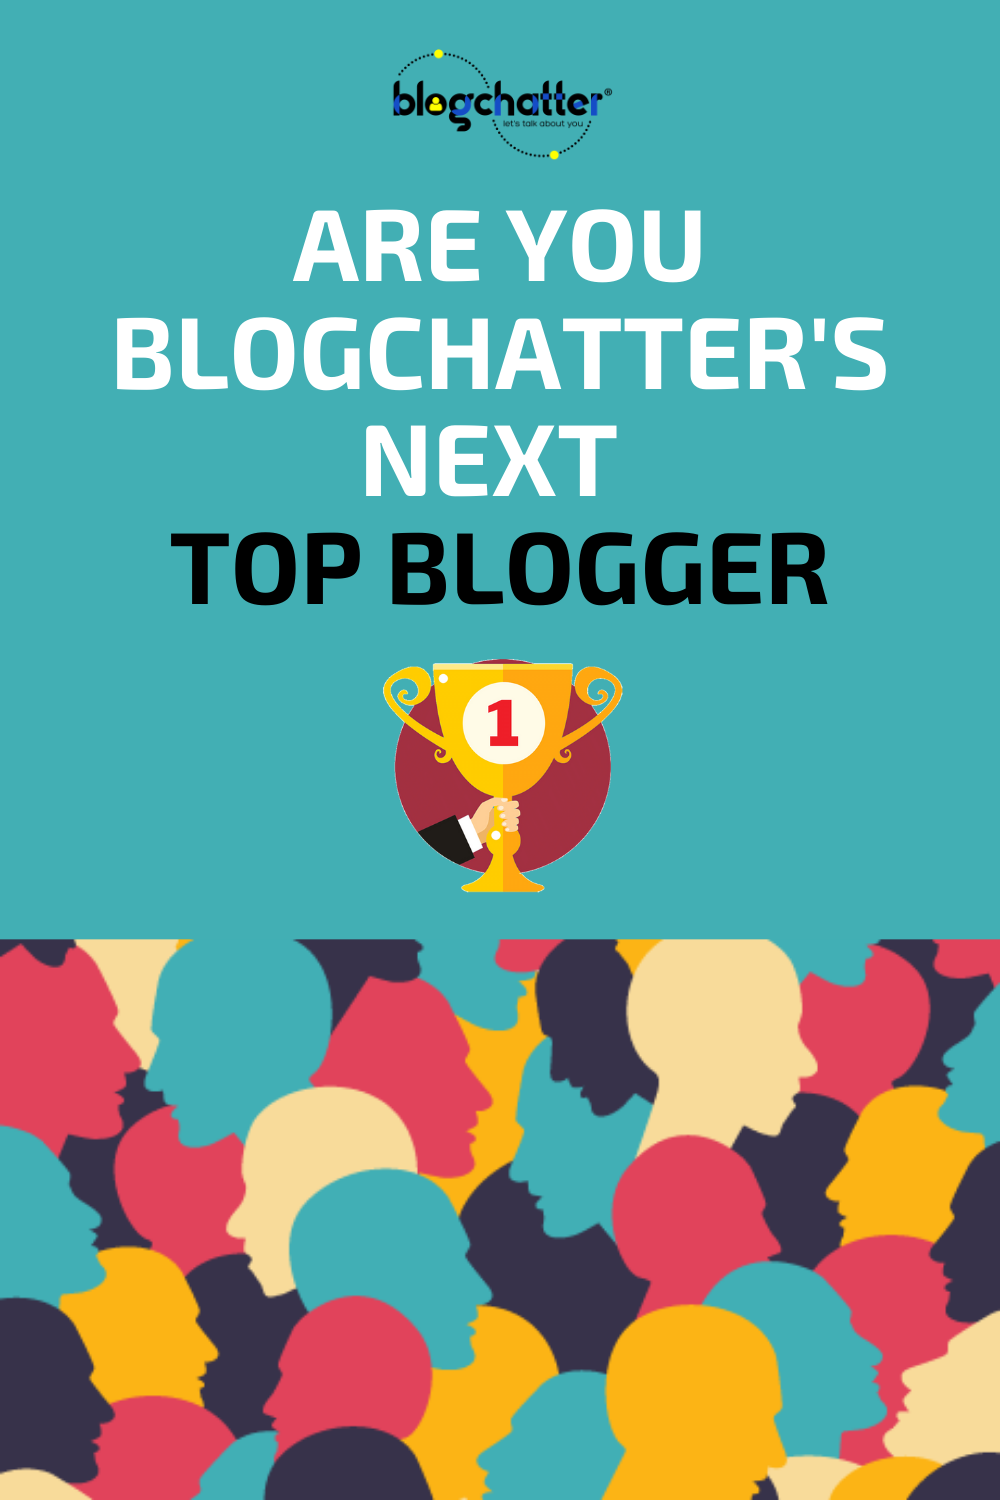 Blogchatter's next Top Blogger